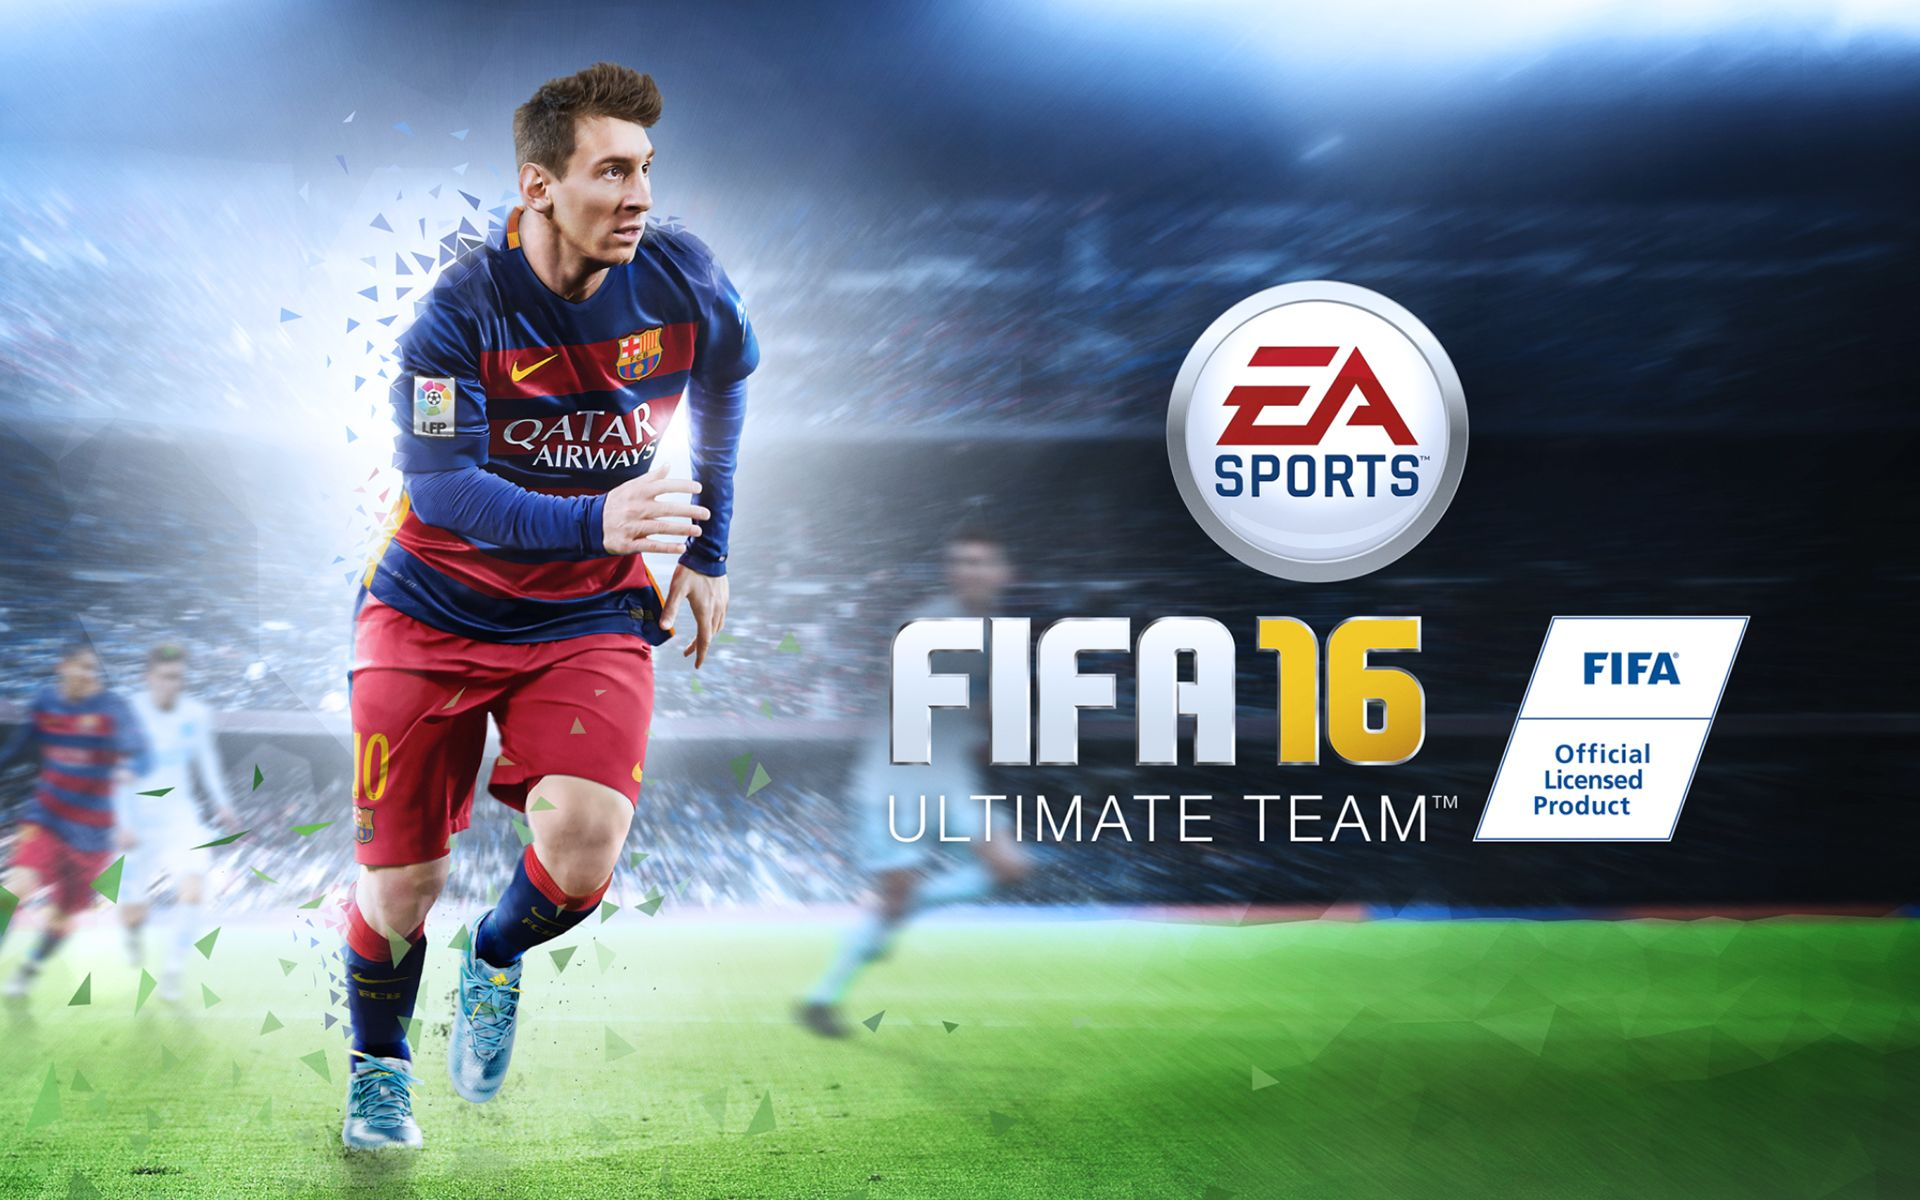 Fifa 16 Ultimate Team Mobile Sports Game Reviews For Ios And Android Fifa 16 Fifa Ultimate Team Fifa